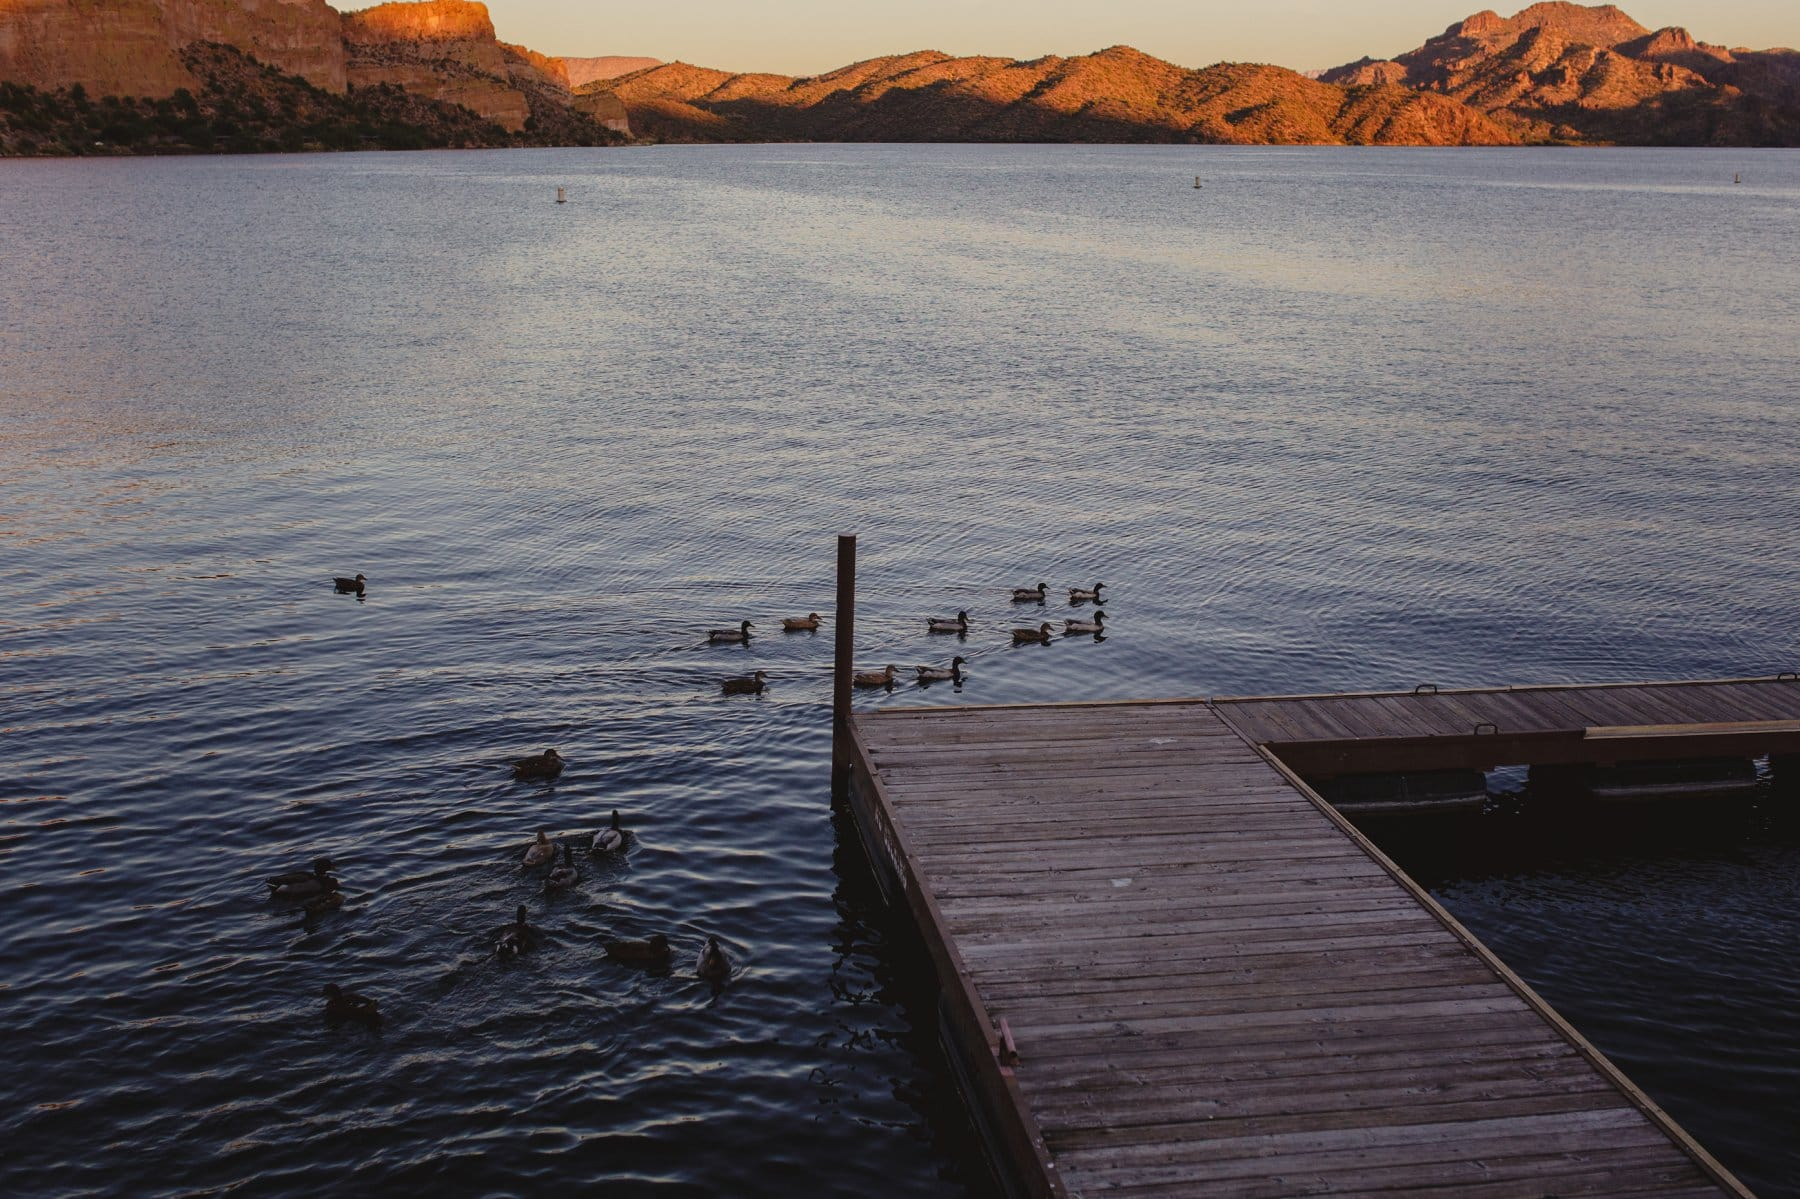 Saguaro Lake docks at sunset